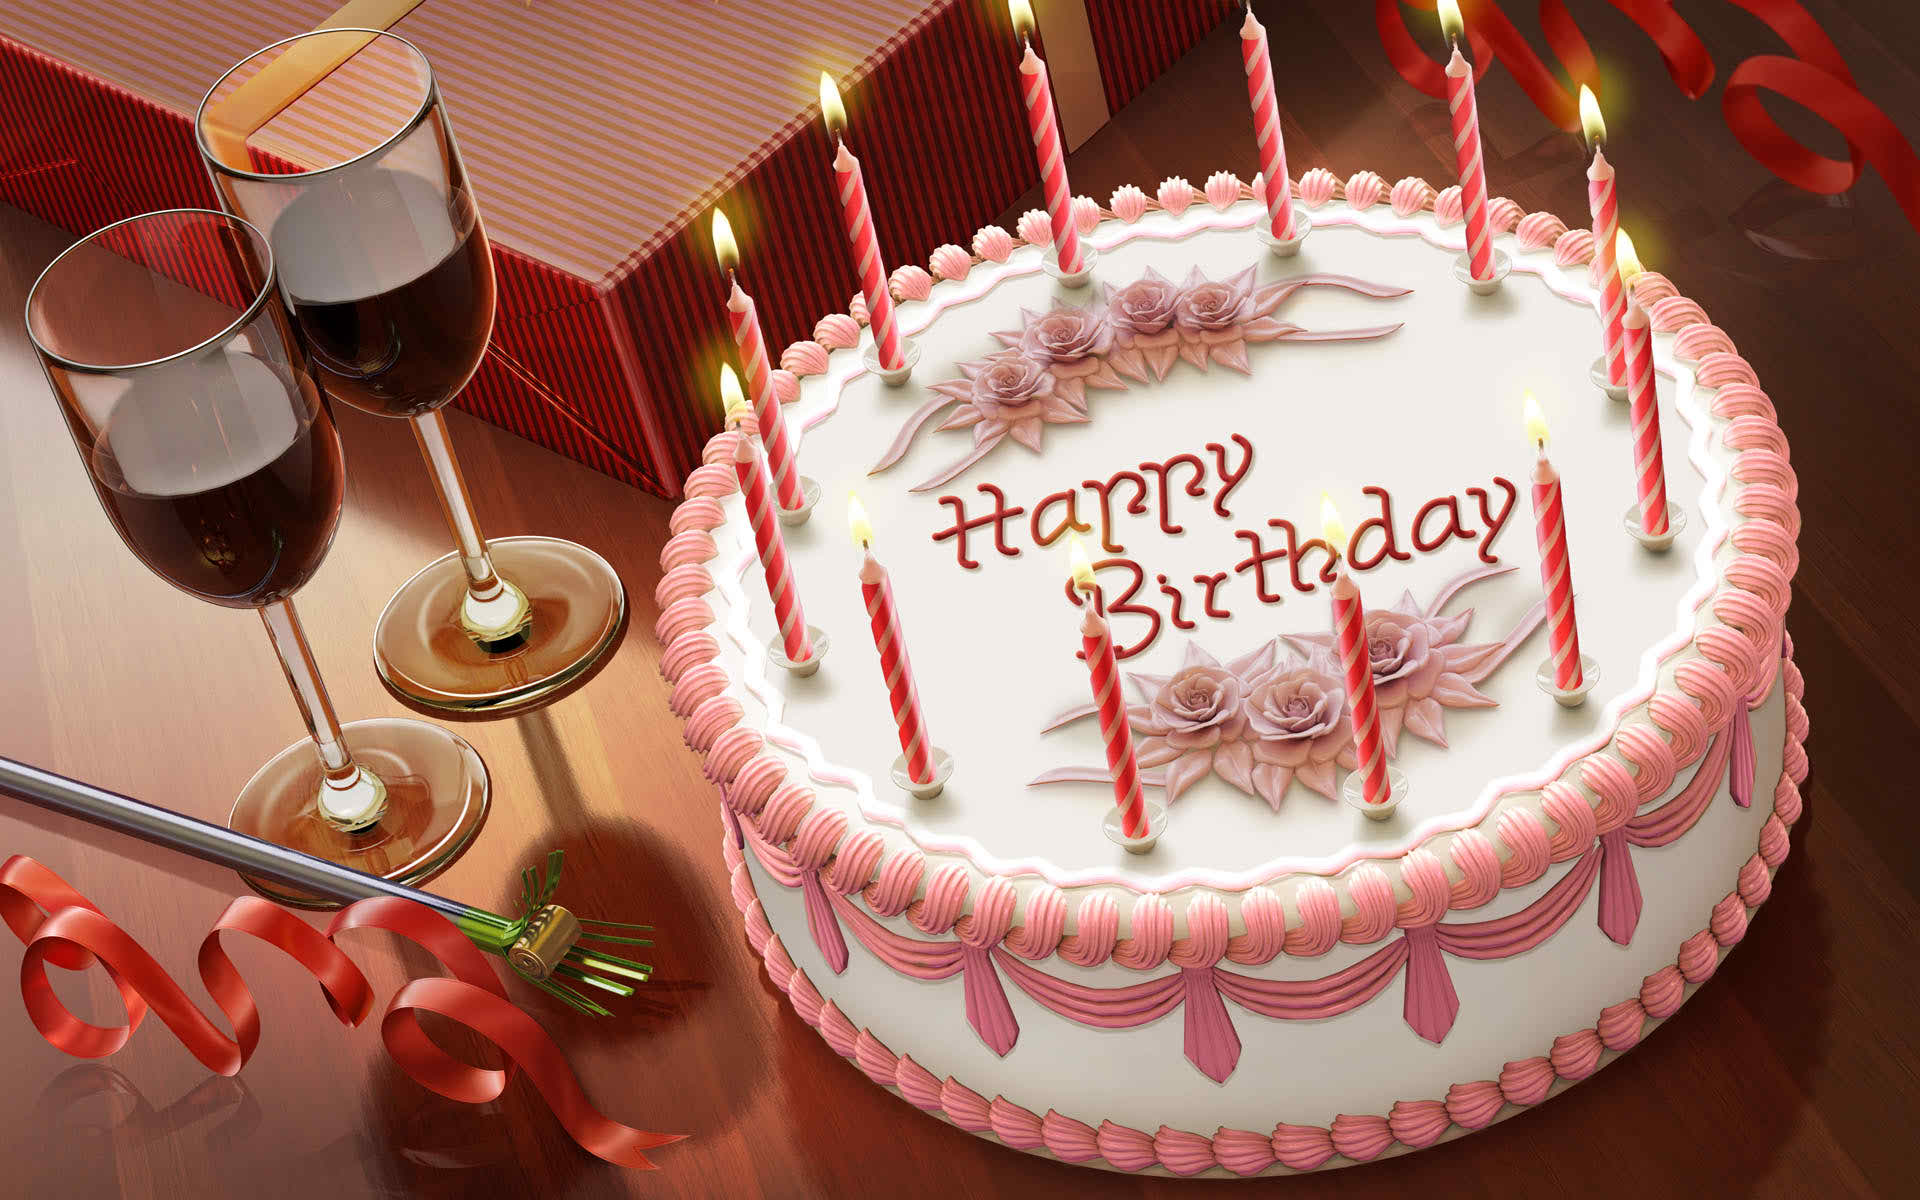 birthday cake with message picture ; Happy-Birthday-wishes-cake-with-candle